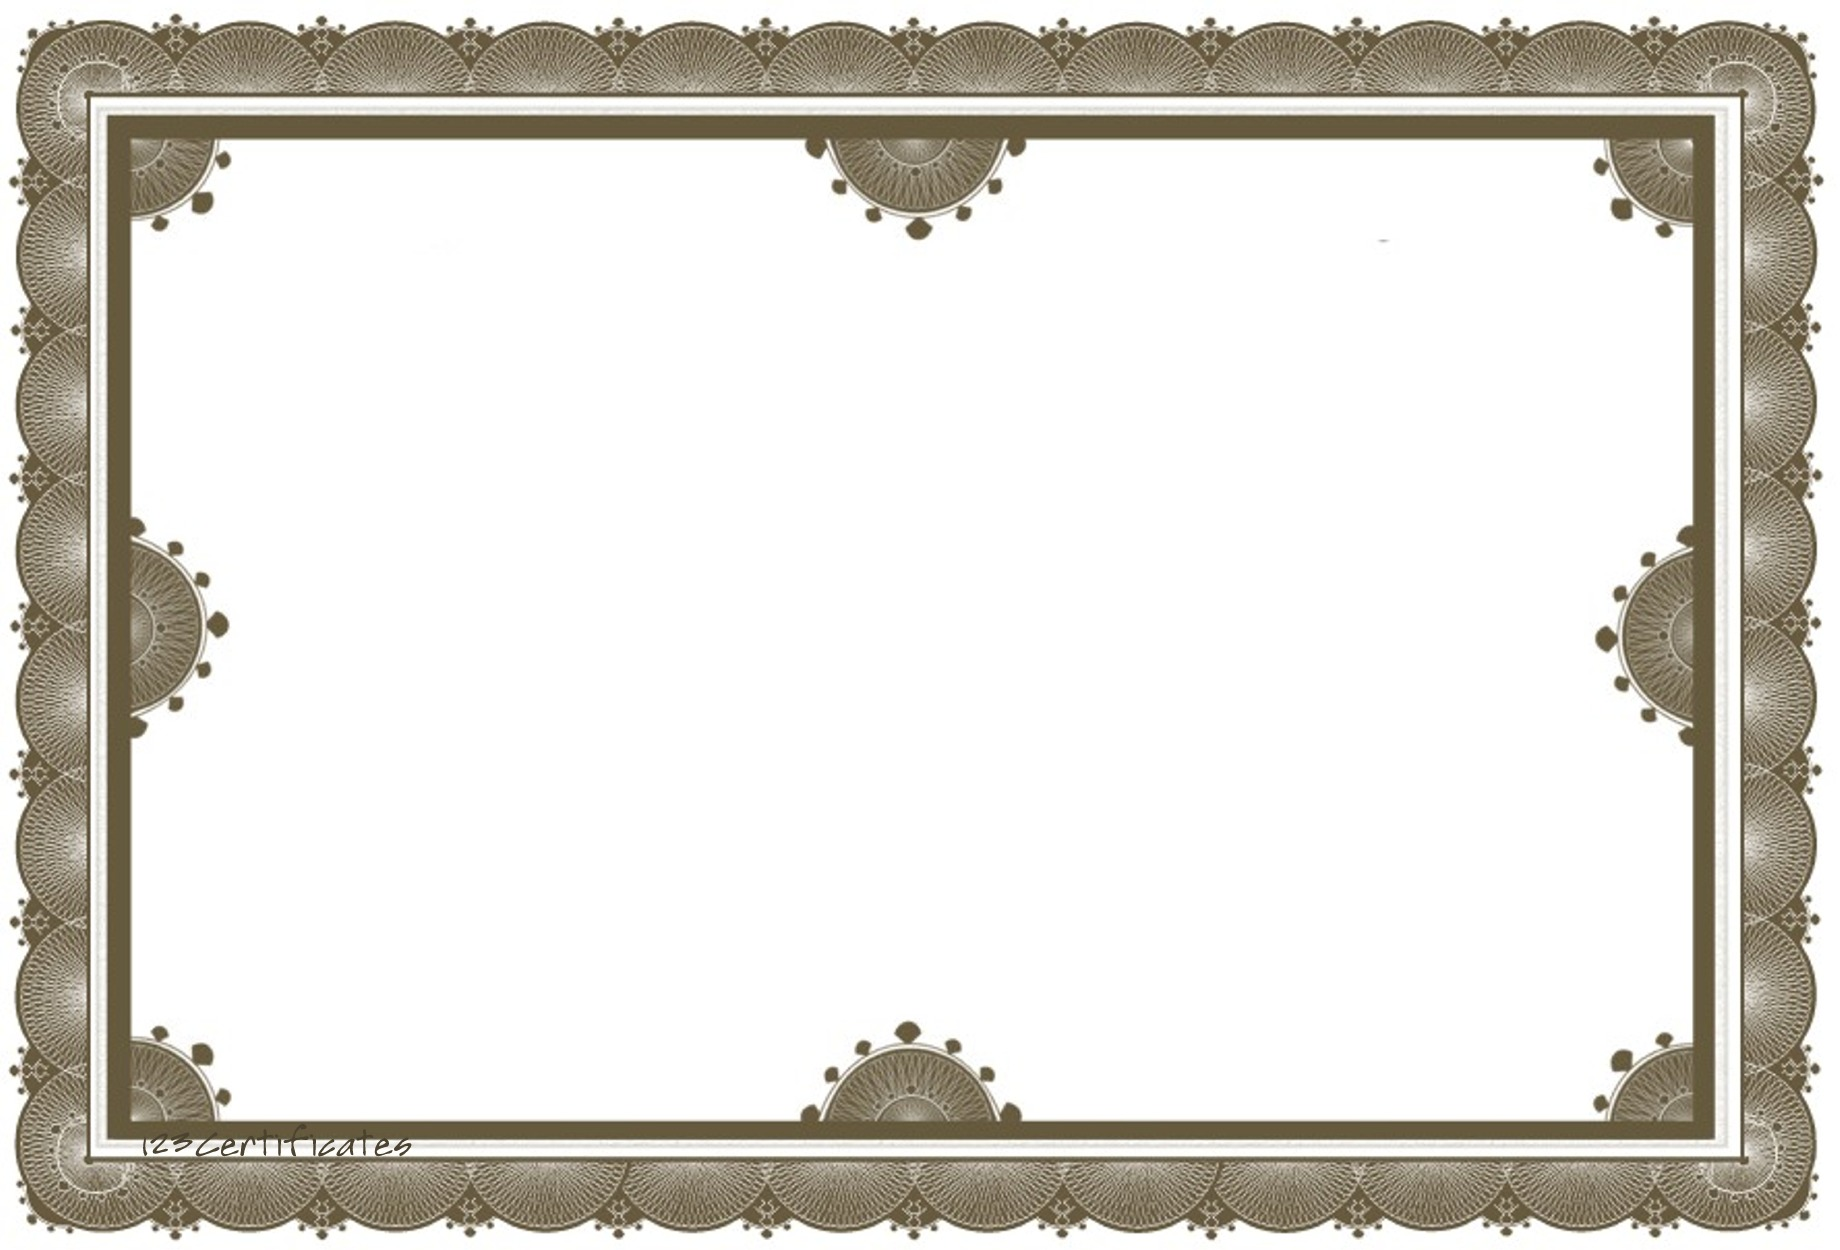 award certificate border - Certificate Border Design Templates